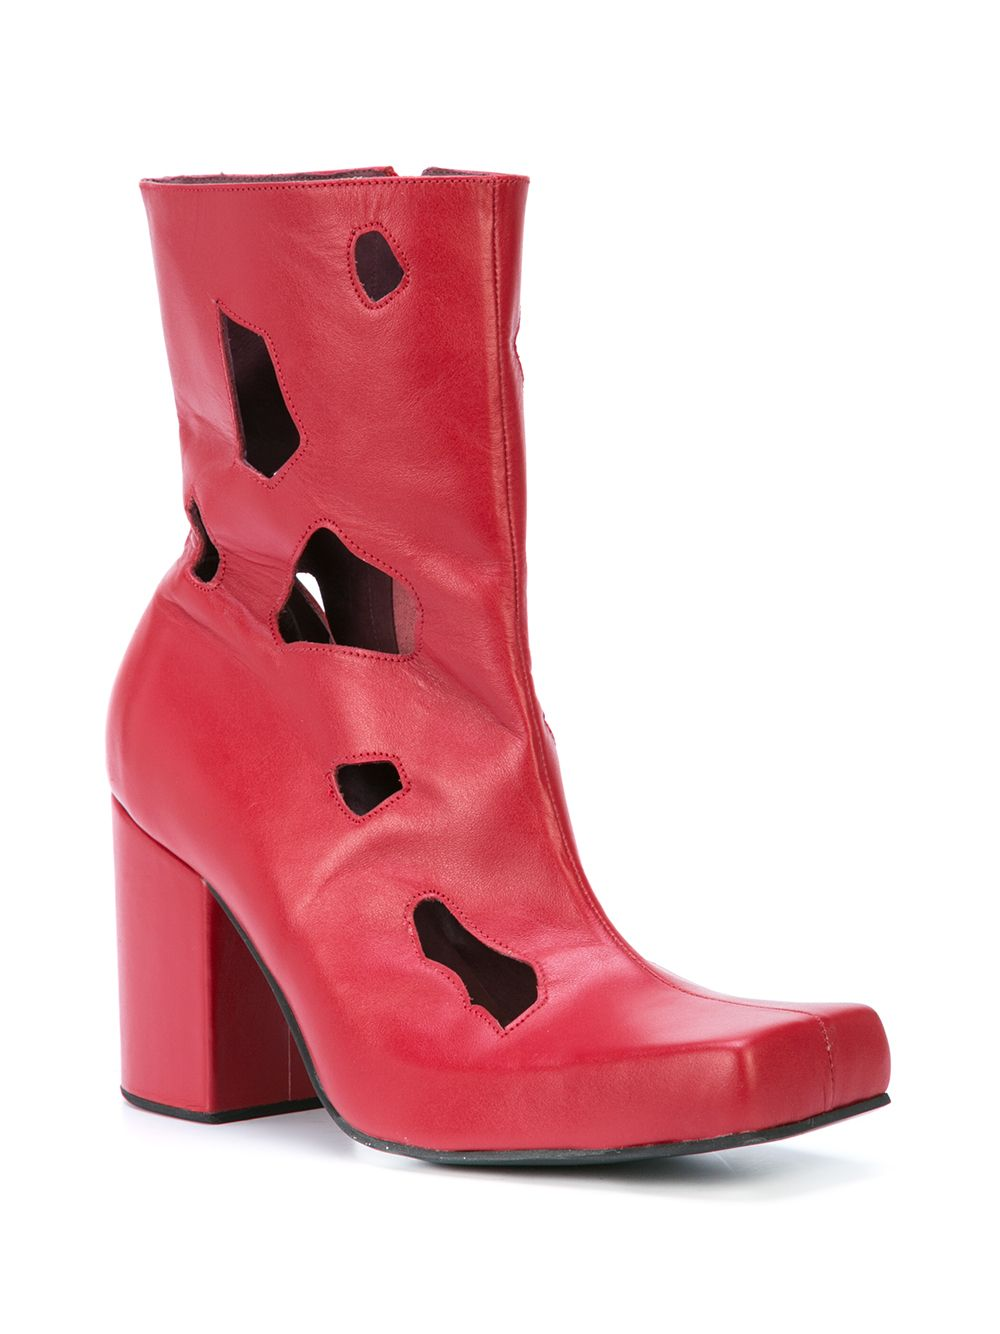 Charles Jeffrey Loverboy Red Holes Jasc Boots - 2